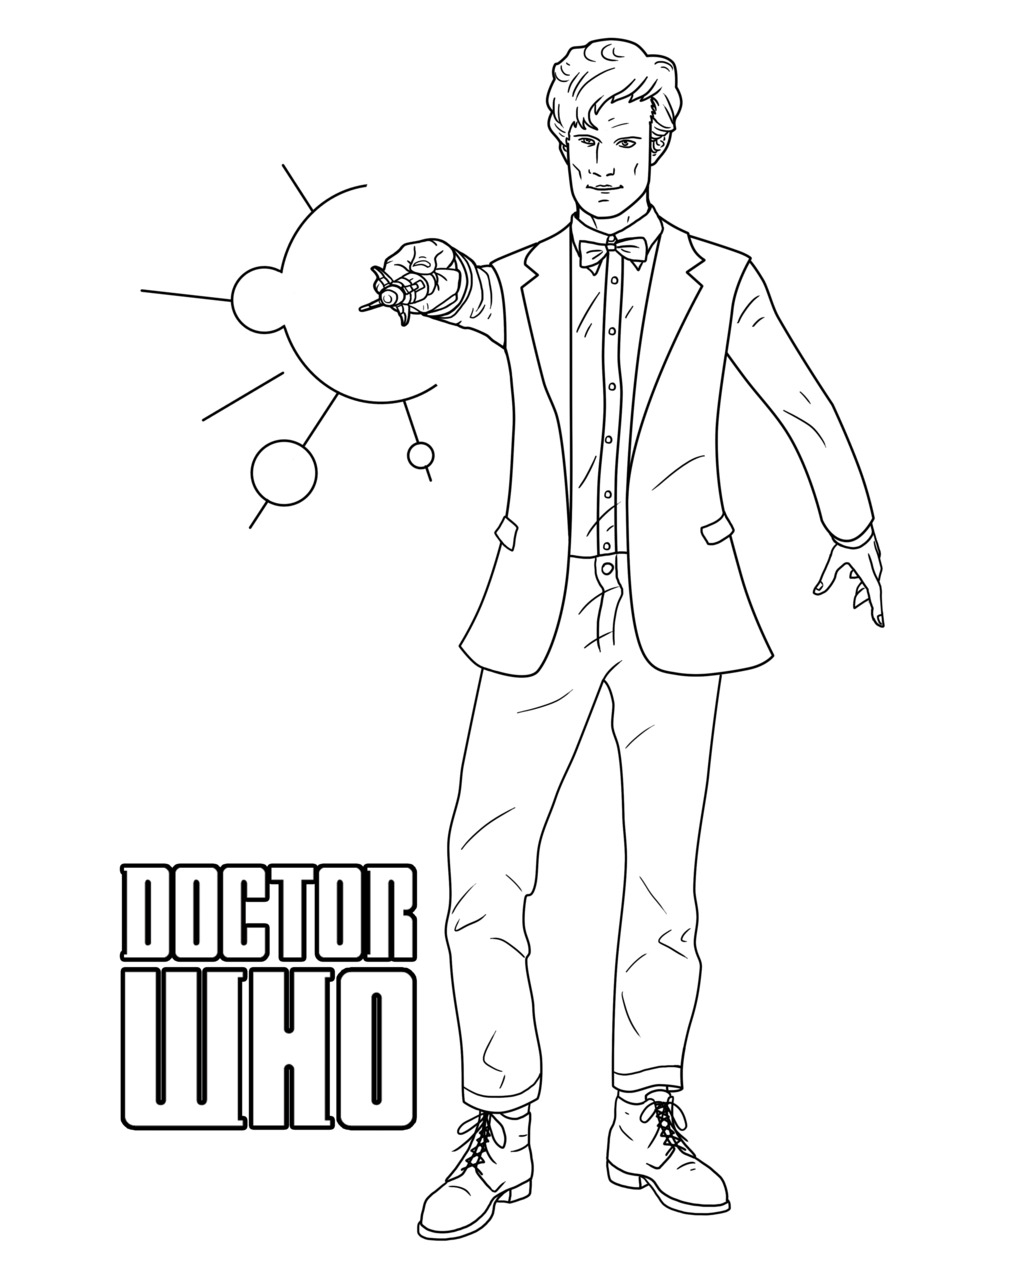 Doctor Who Coloring Page Free Printable Doctor Who Coloring Pages At Getdrawings Free